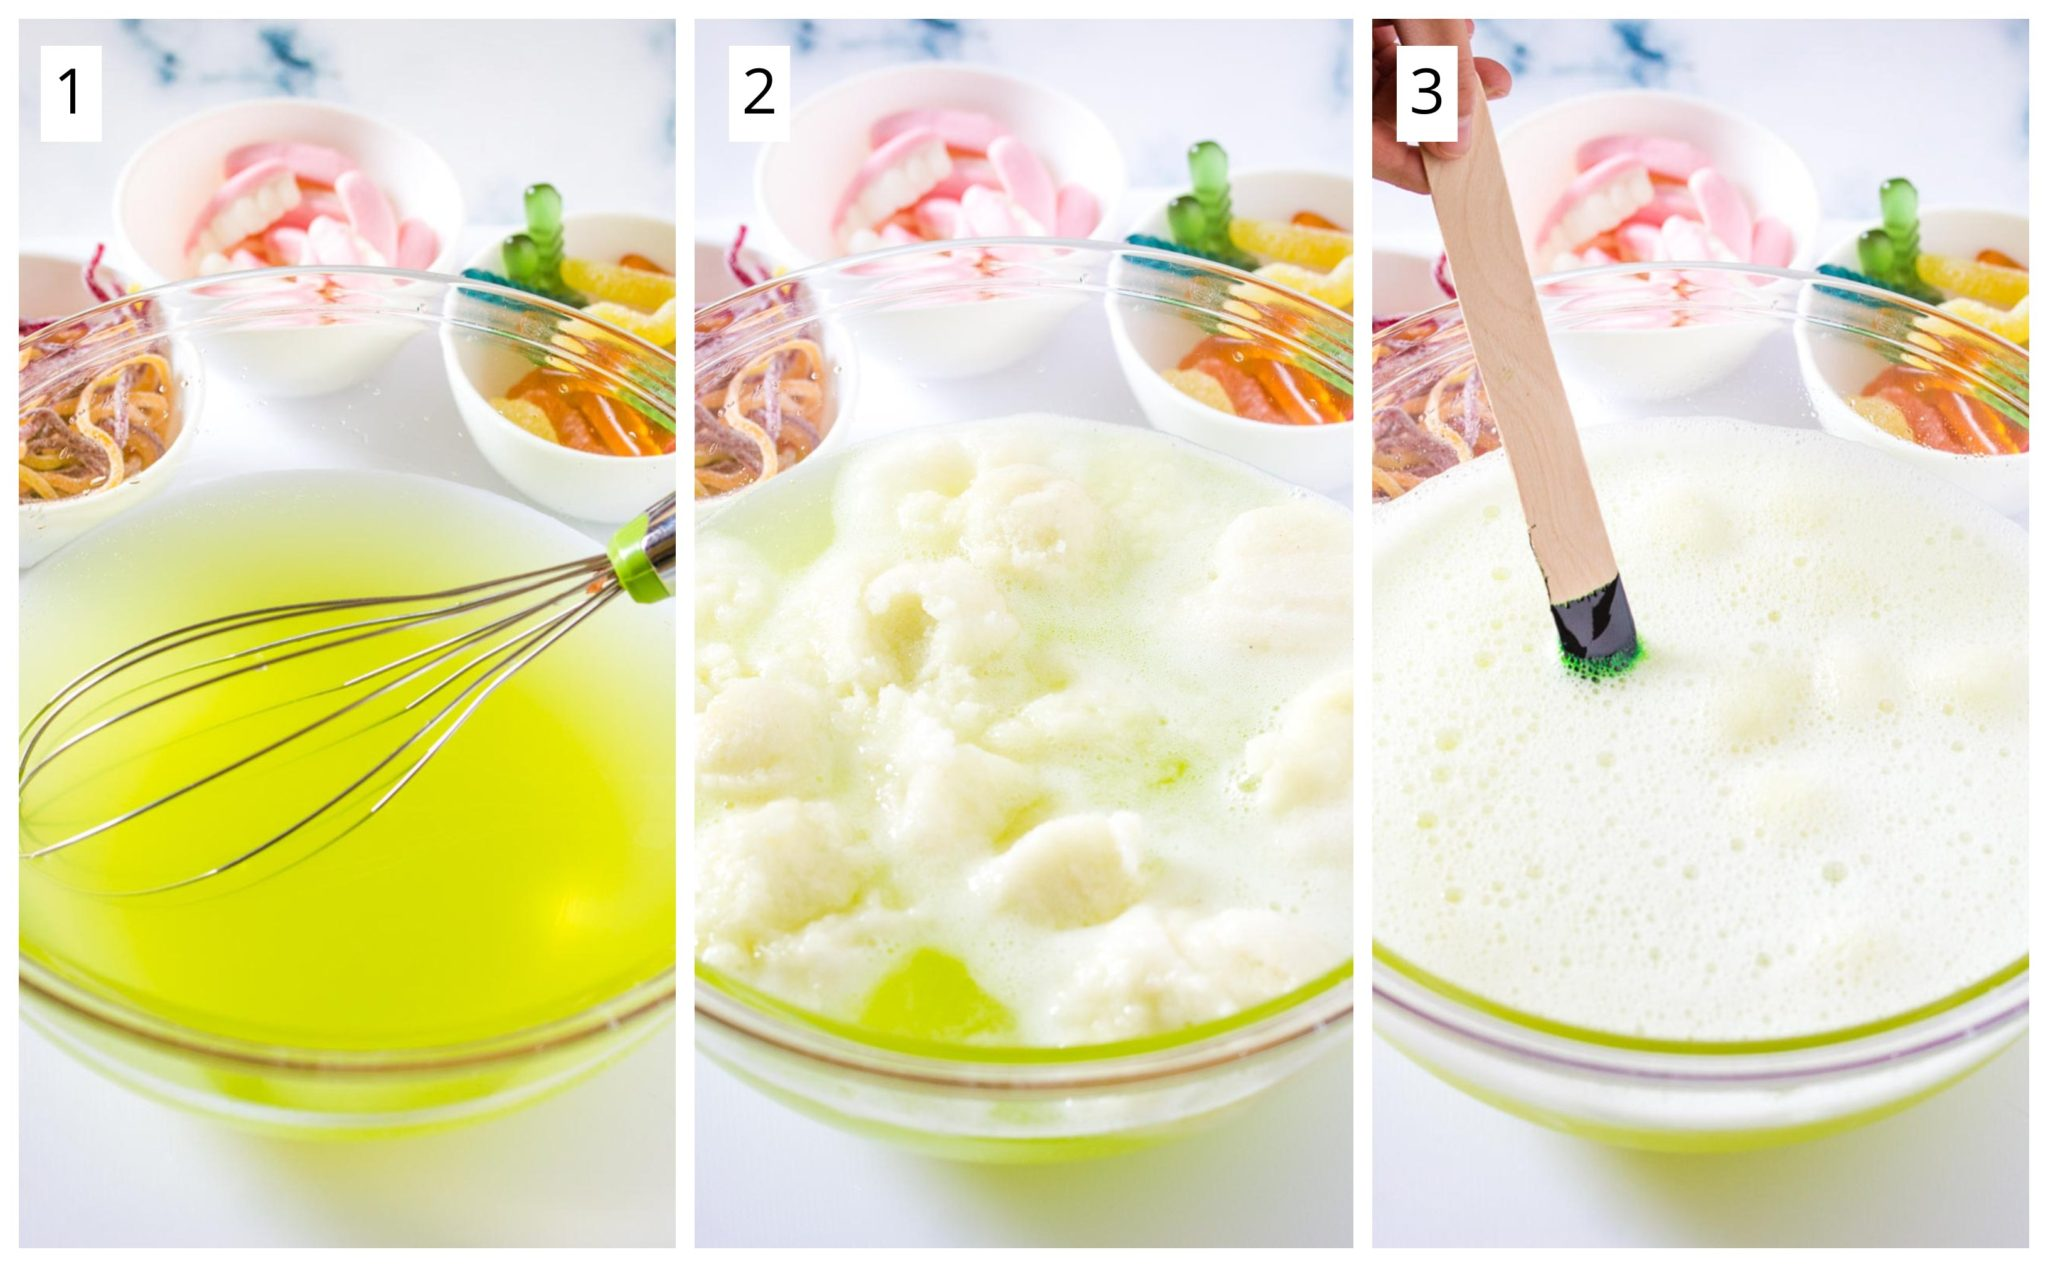 Step by step photos on how to make polyjuice potion